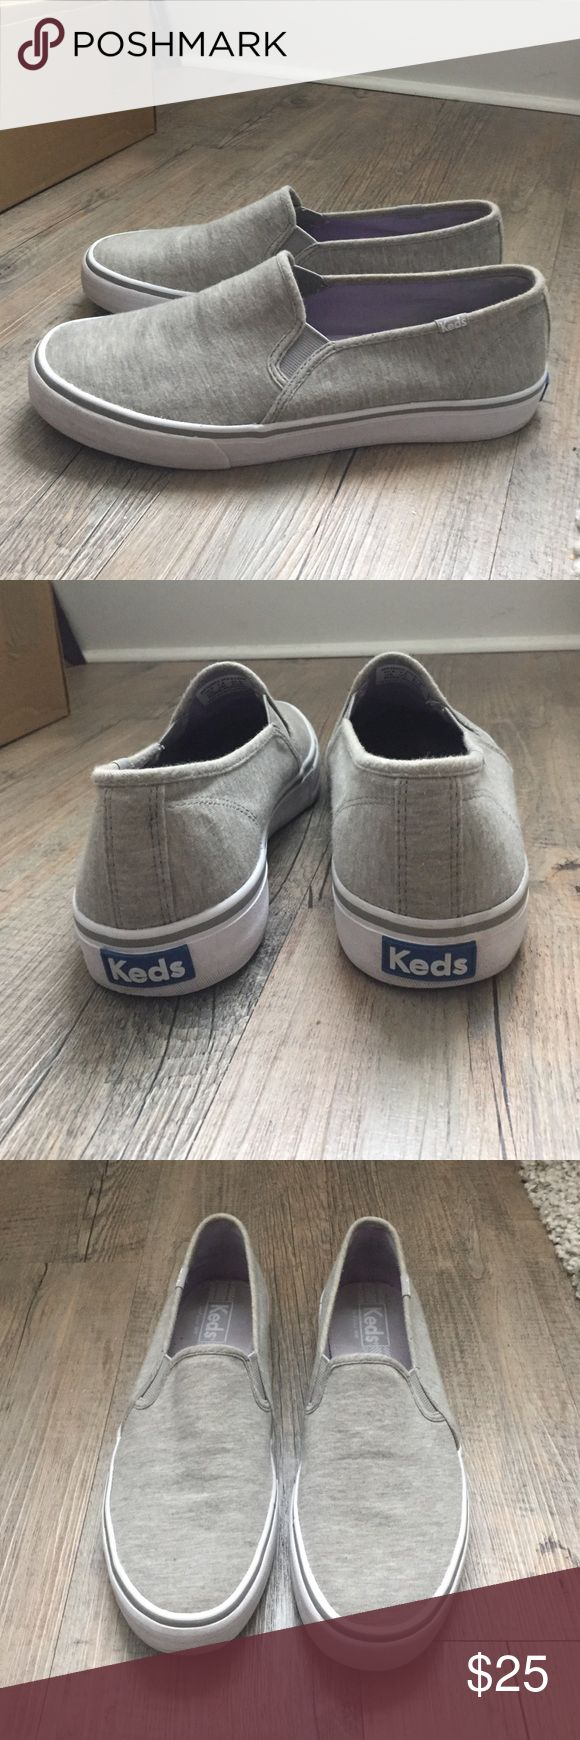 Keds Double Decker Jersey Women's Slip On Sneakers Cute slip on sneakers! Only worn a few times. Keds Shoes Sneakers